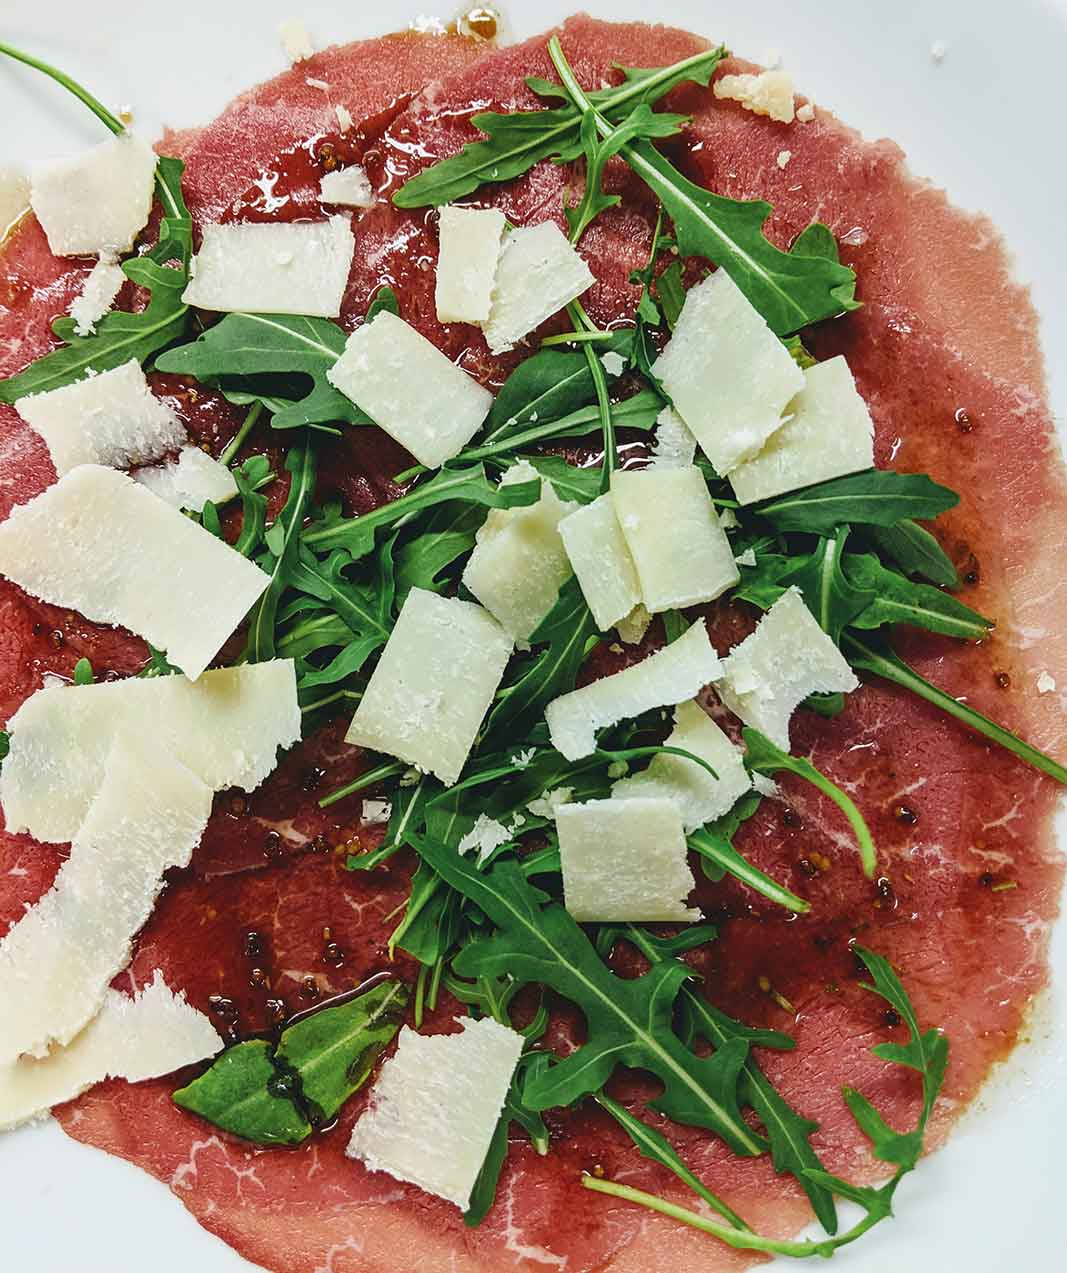 Beef carpaccio with Parmesan cheese, rocket salad and mustard vinaigrette